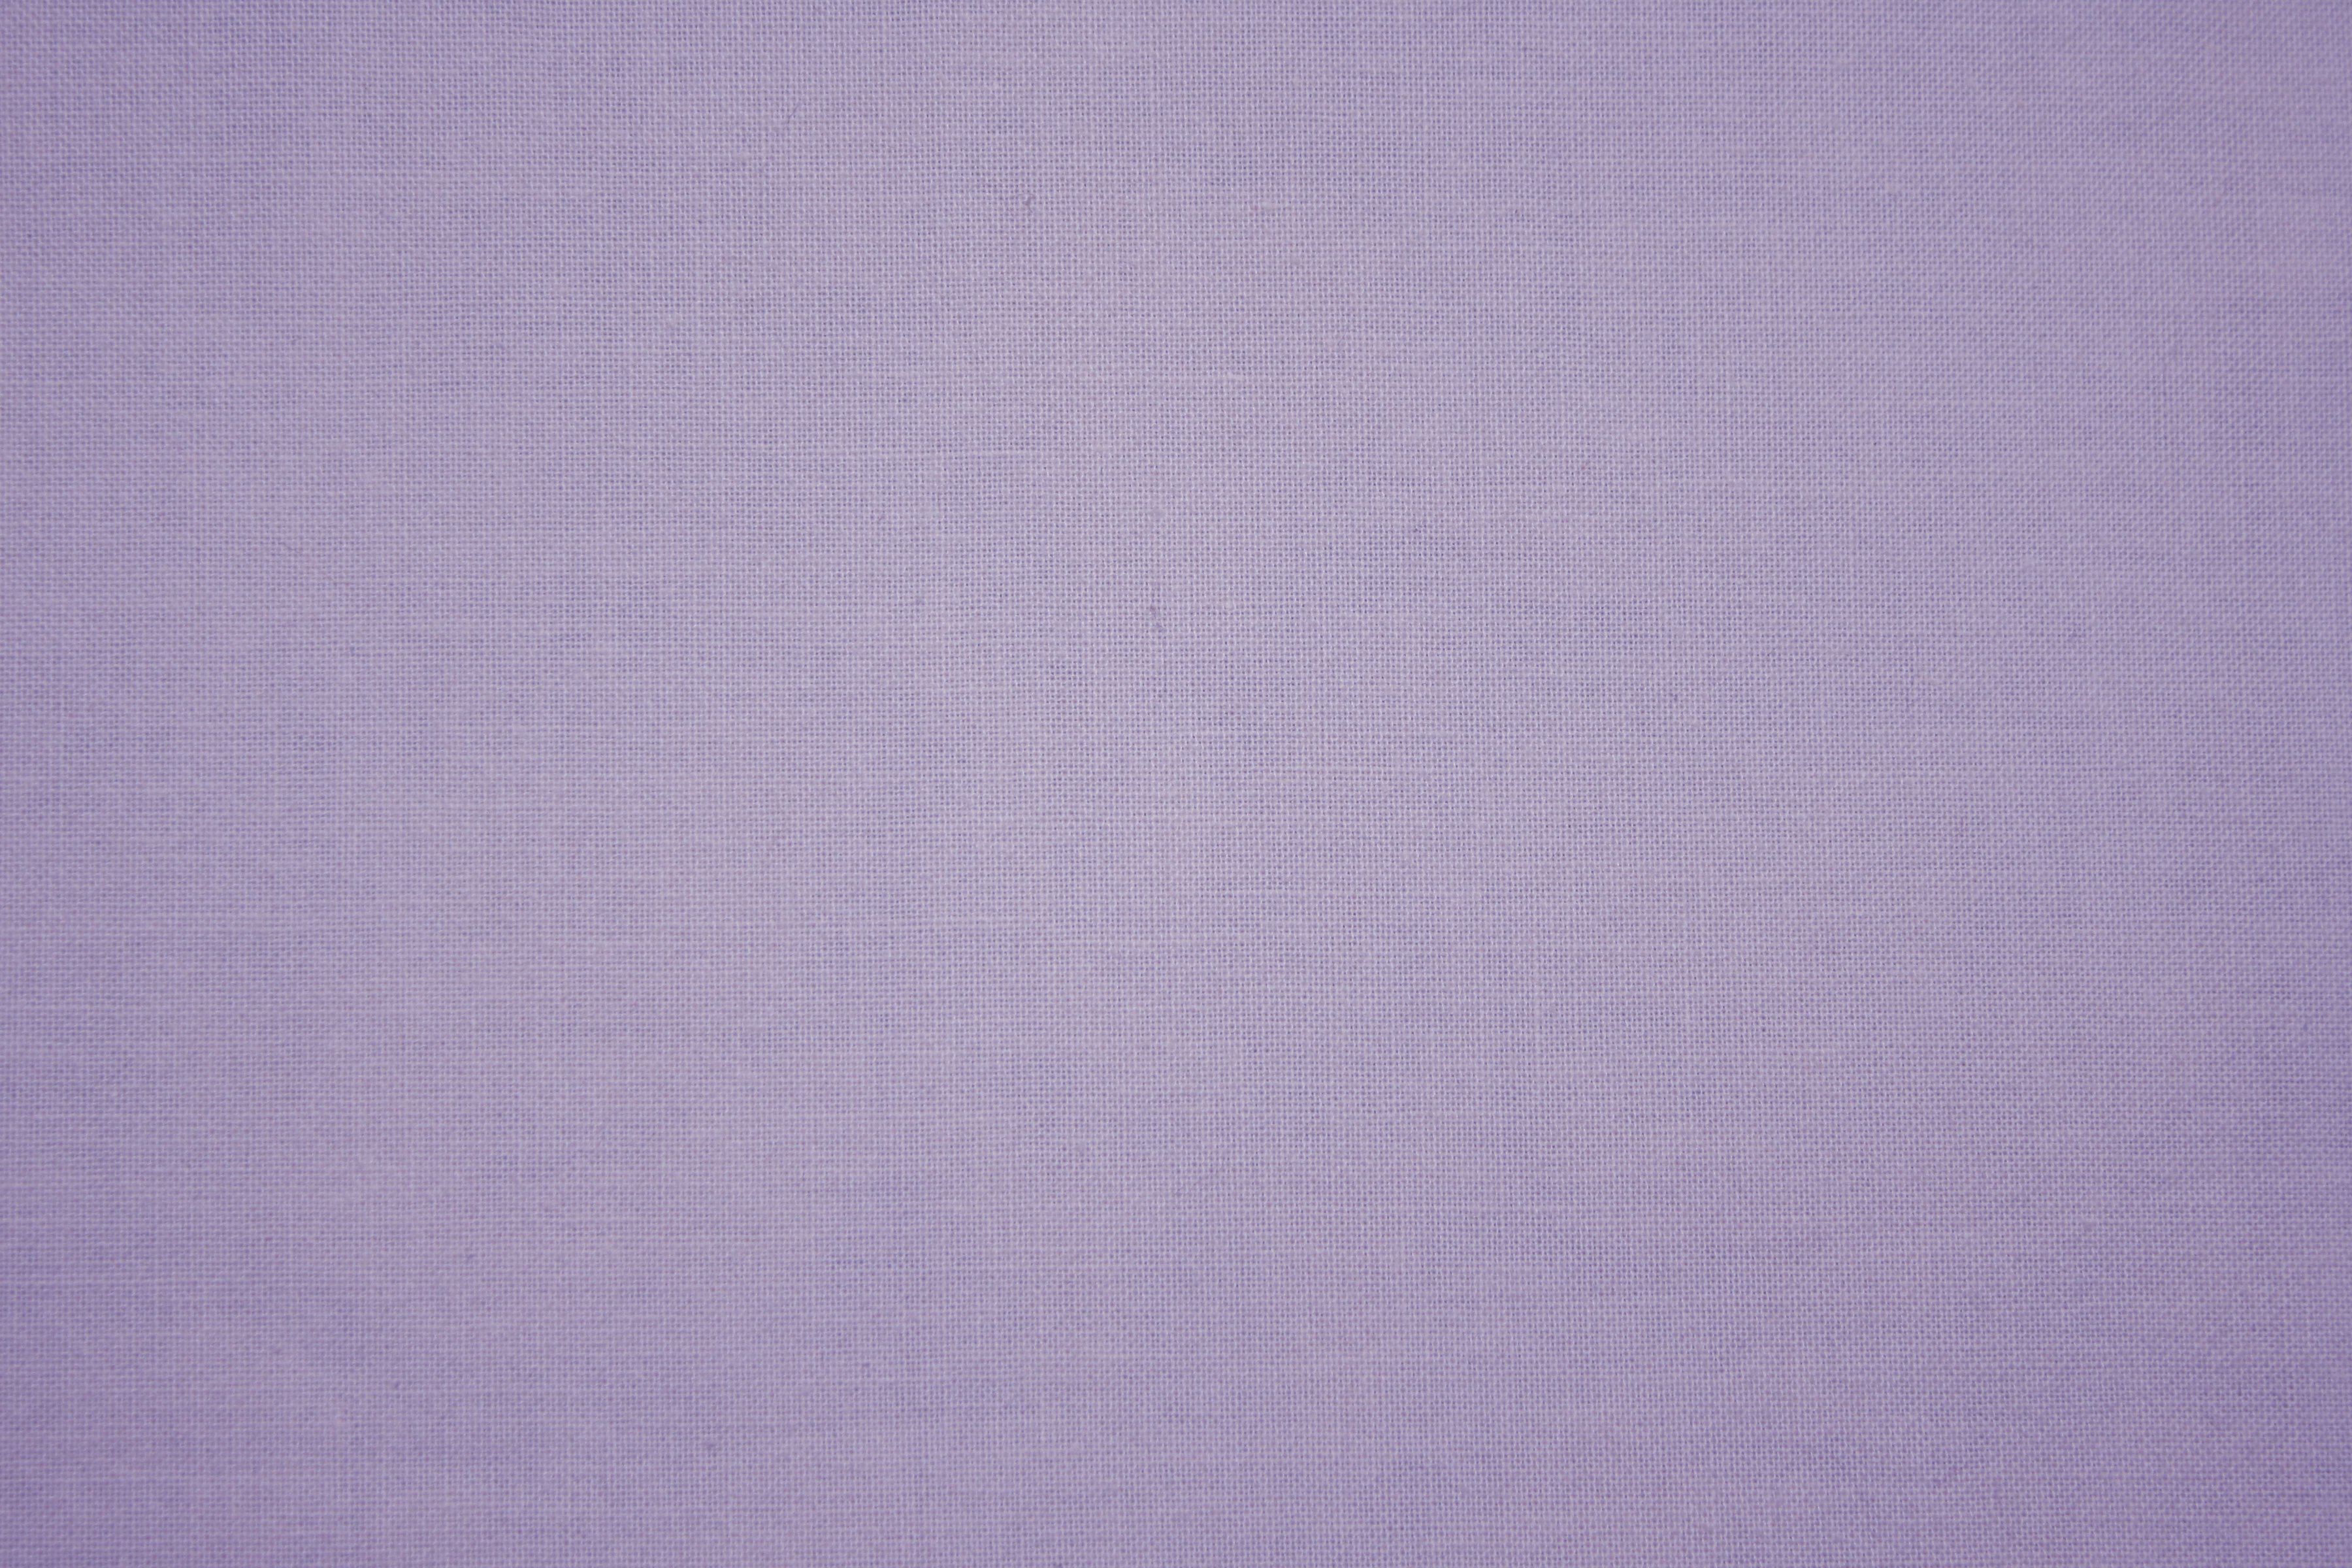 Dusty Purple Canvas Fabric Texture Picture Free